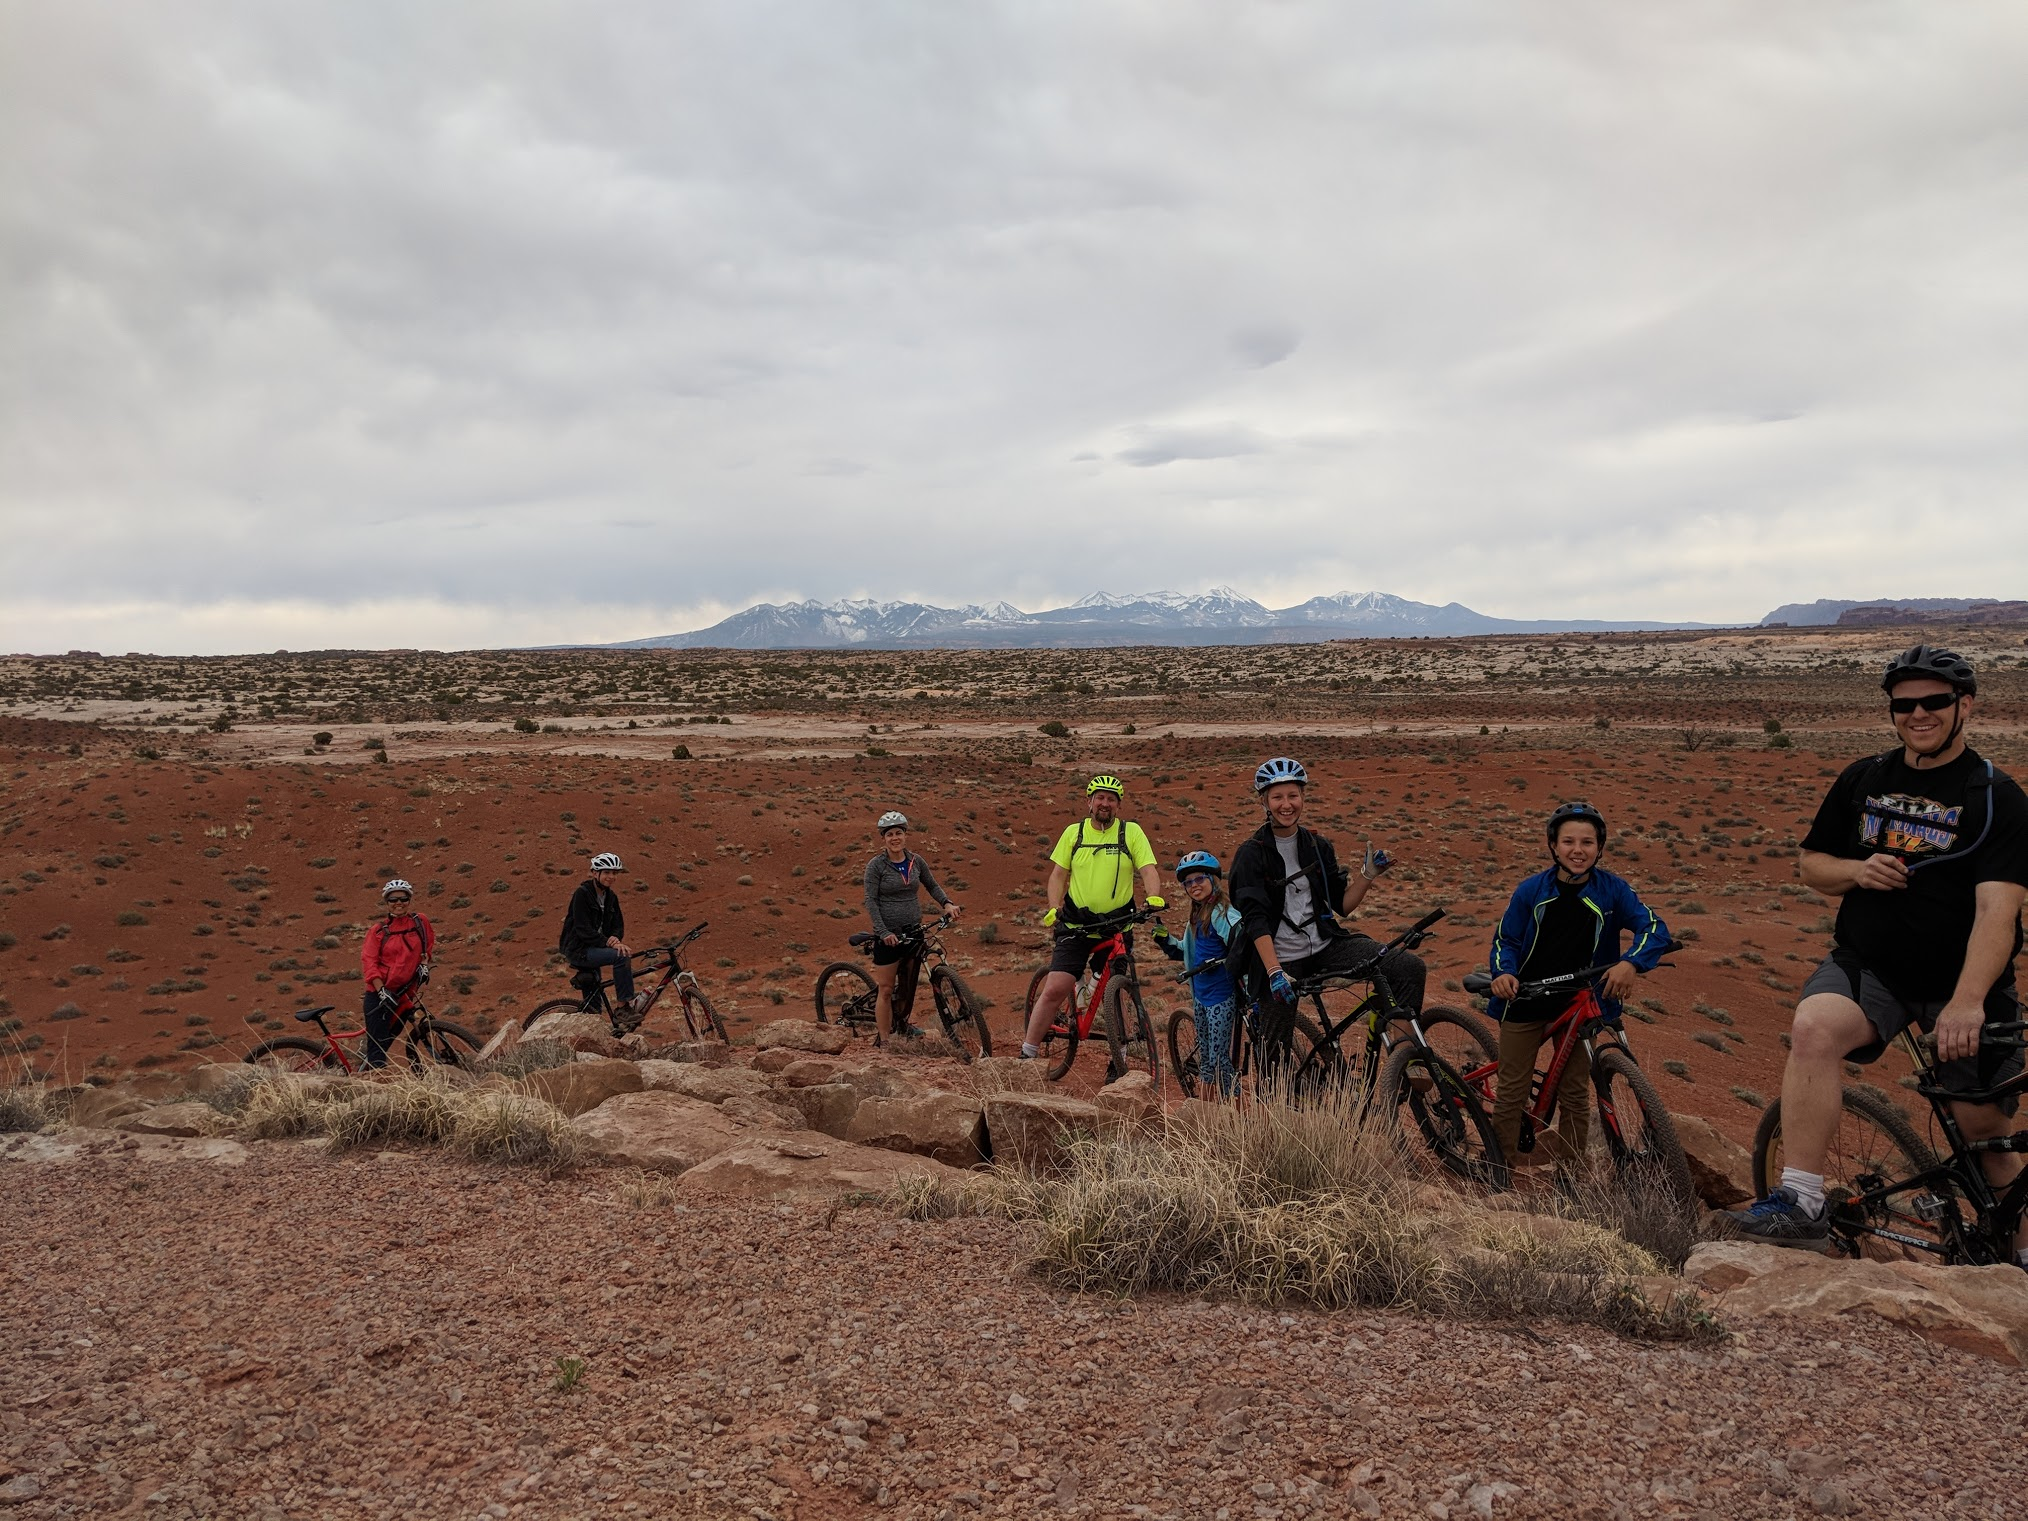 mtn biking with friends 2